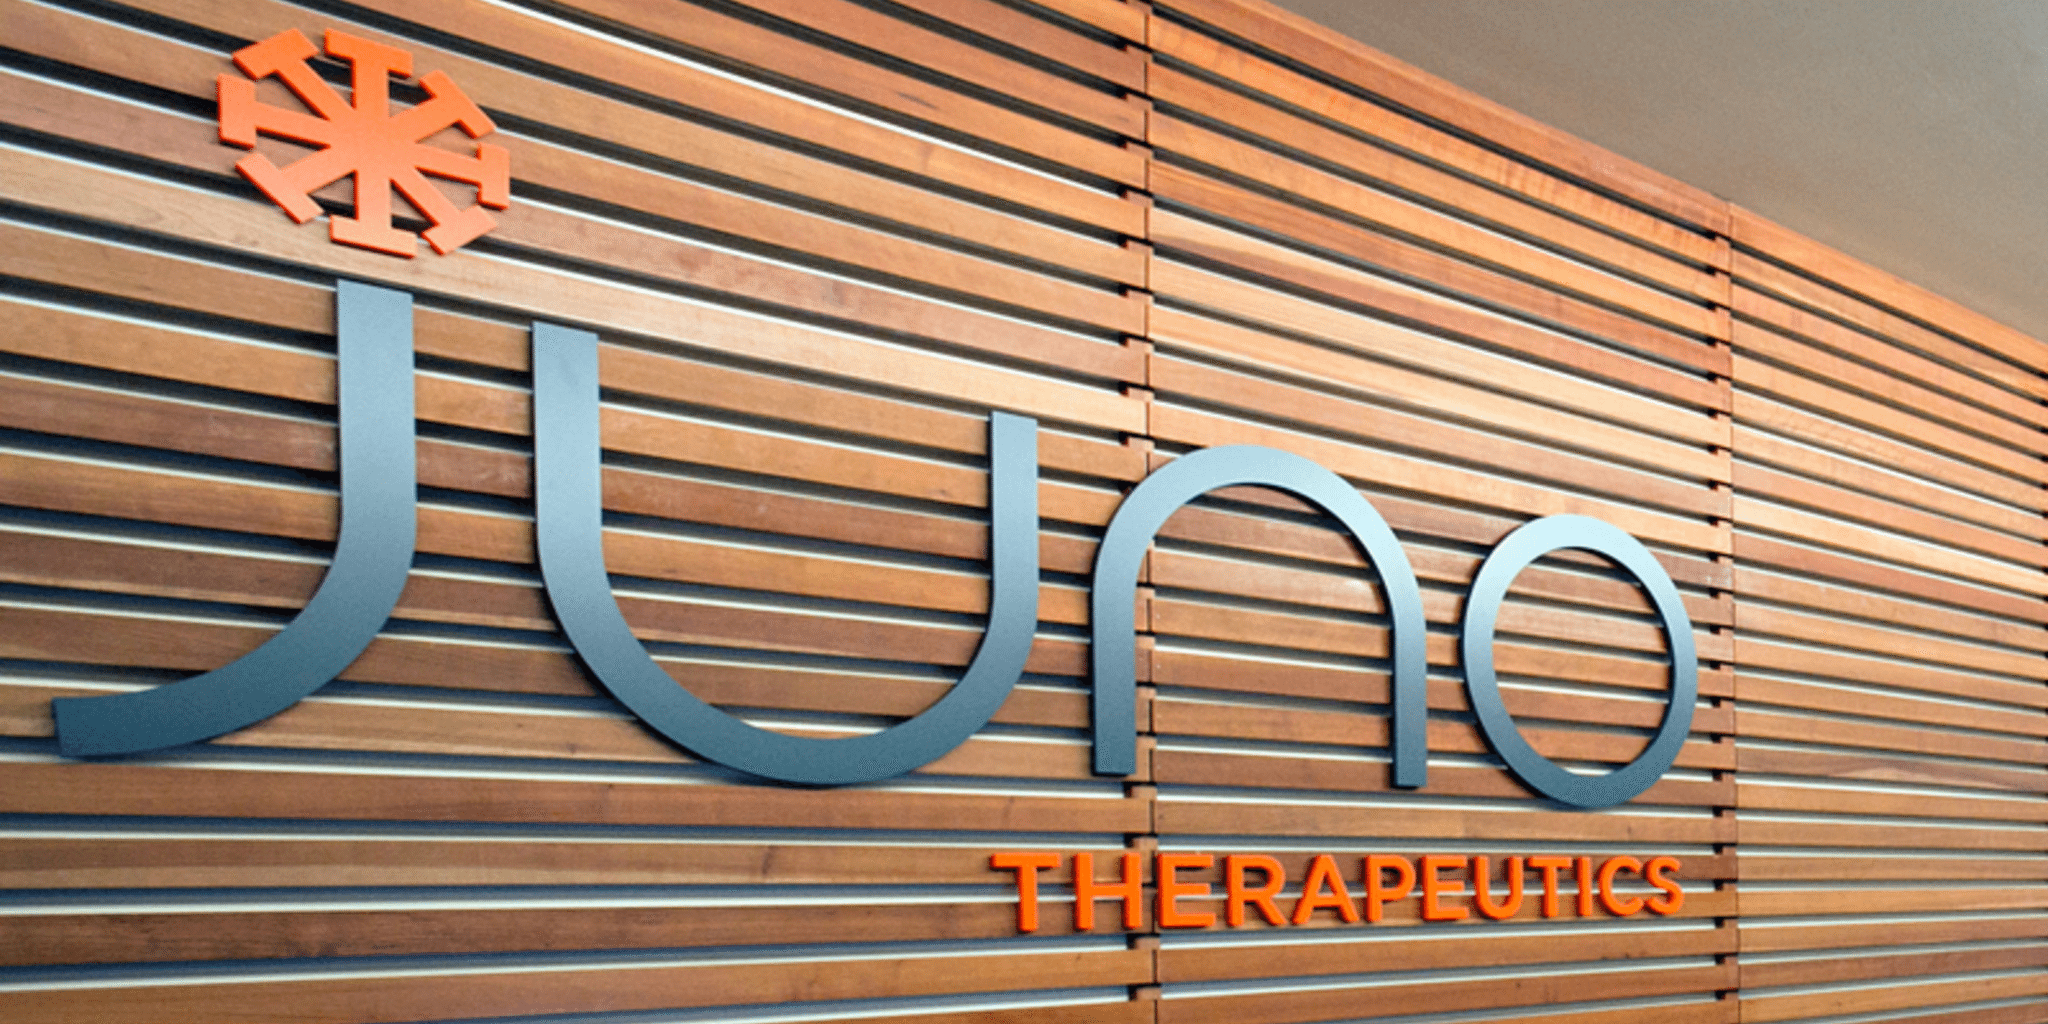 Juno Therapeutics Inc (JUNO) EVP Robert Azelby Sells 29131 Shares